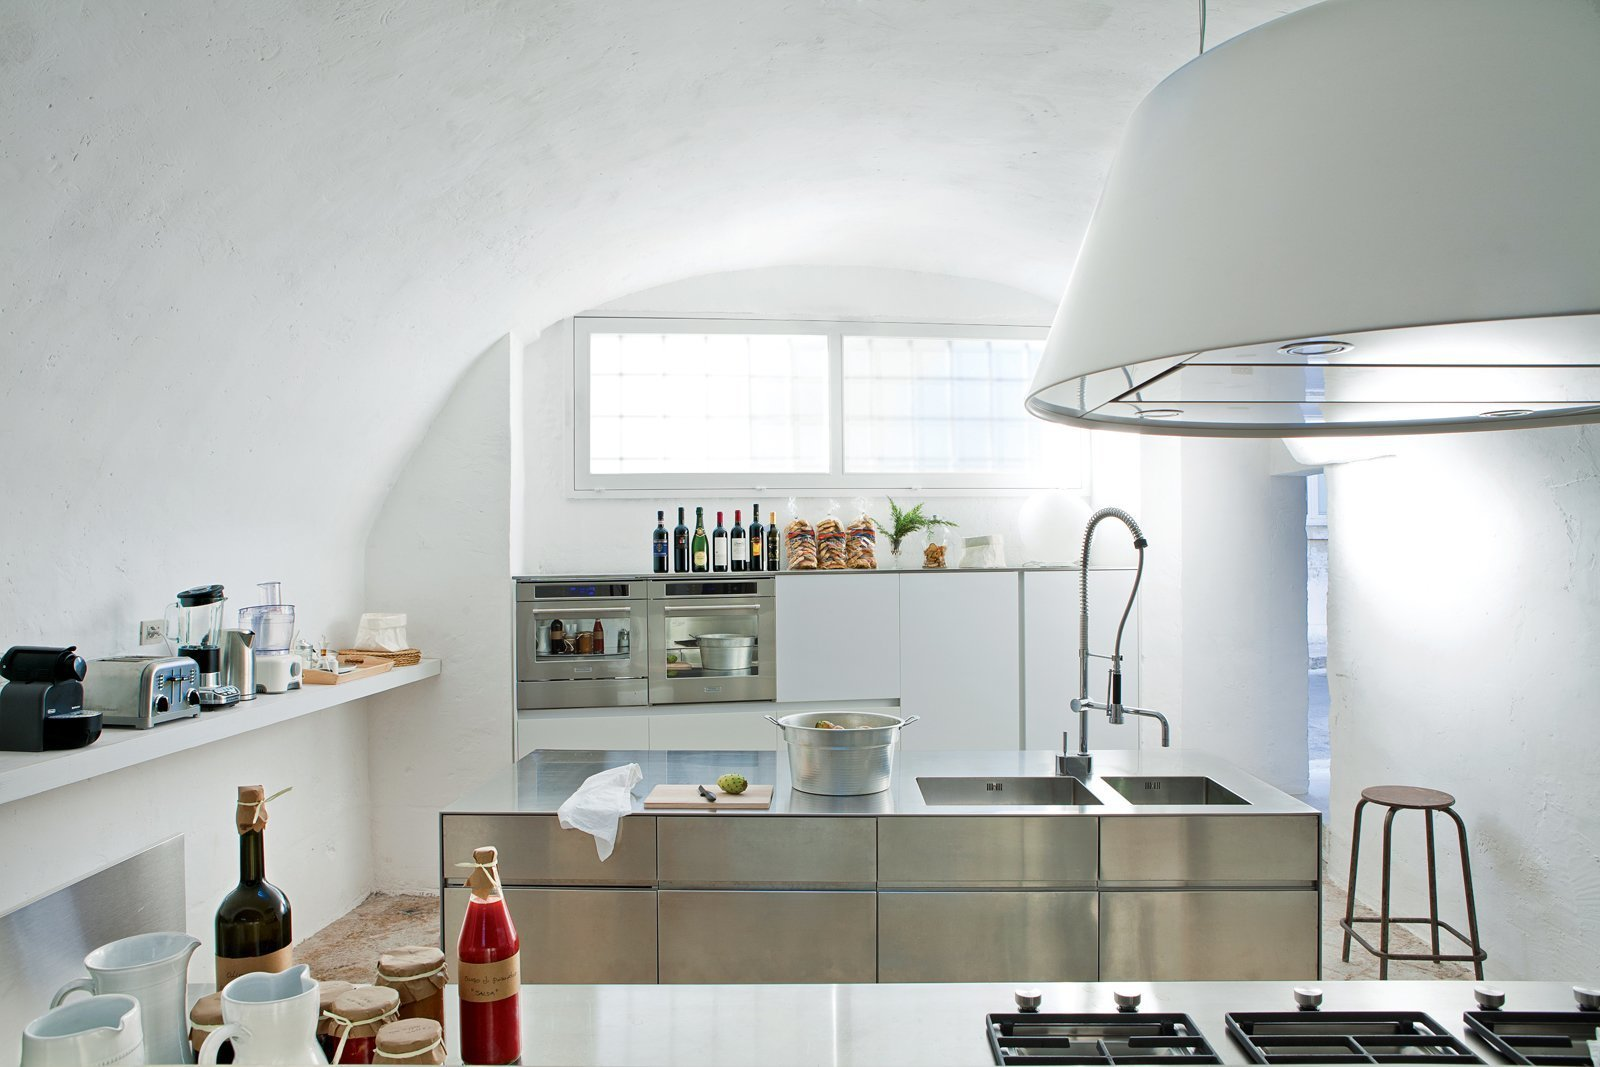 Photo 2 of 7 in 7 Design Tips For a Chef-Worthy Kitchen - Dwell